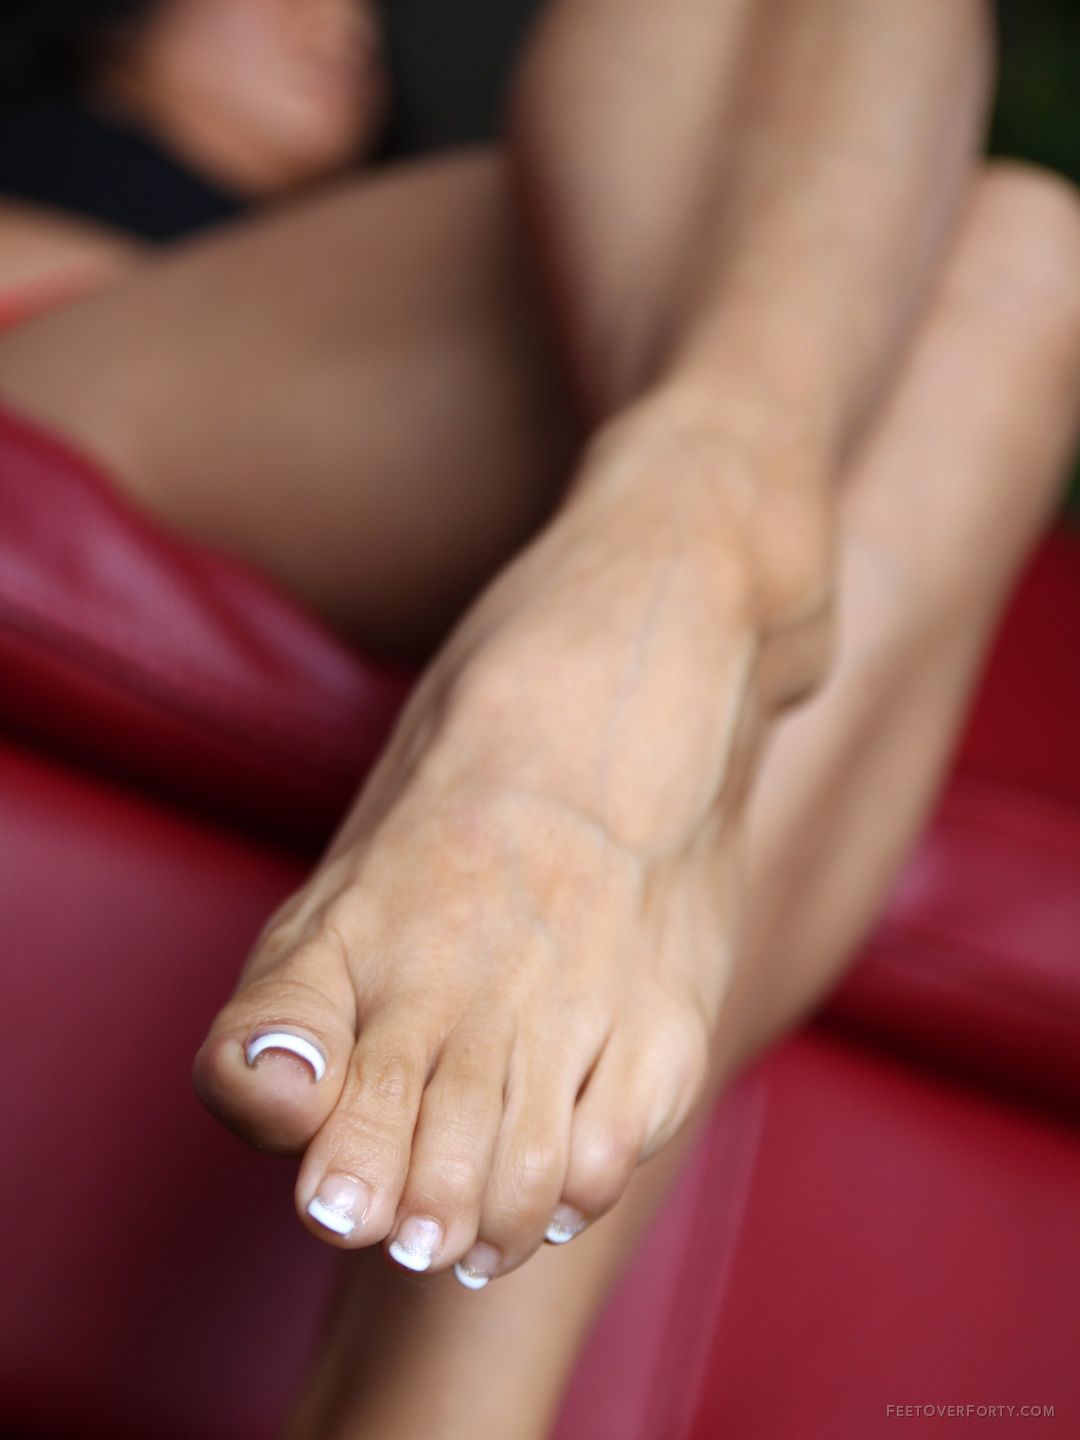 Mature foot play